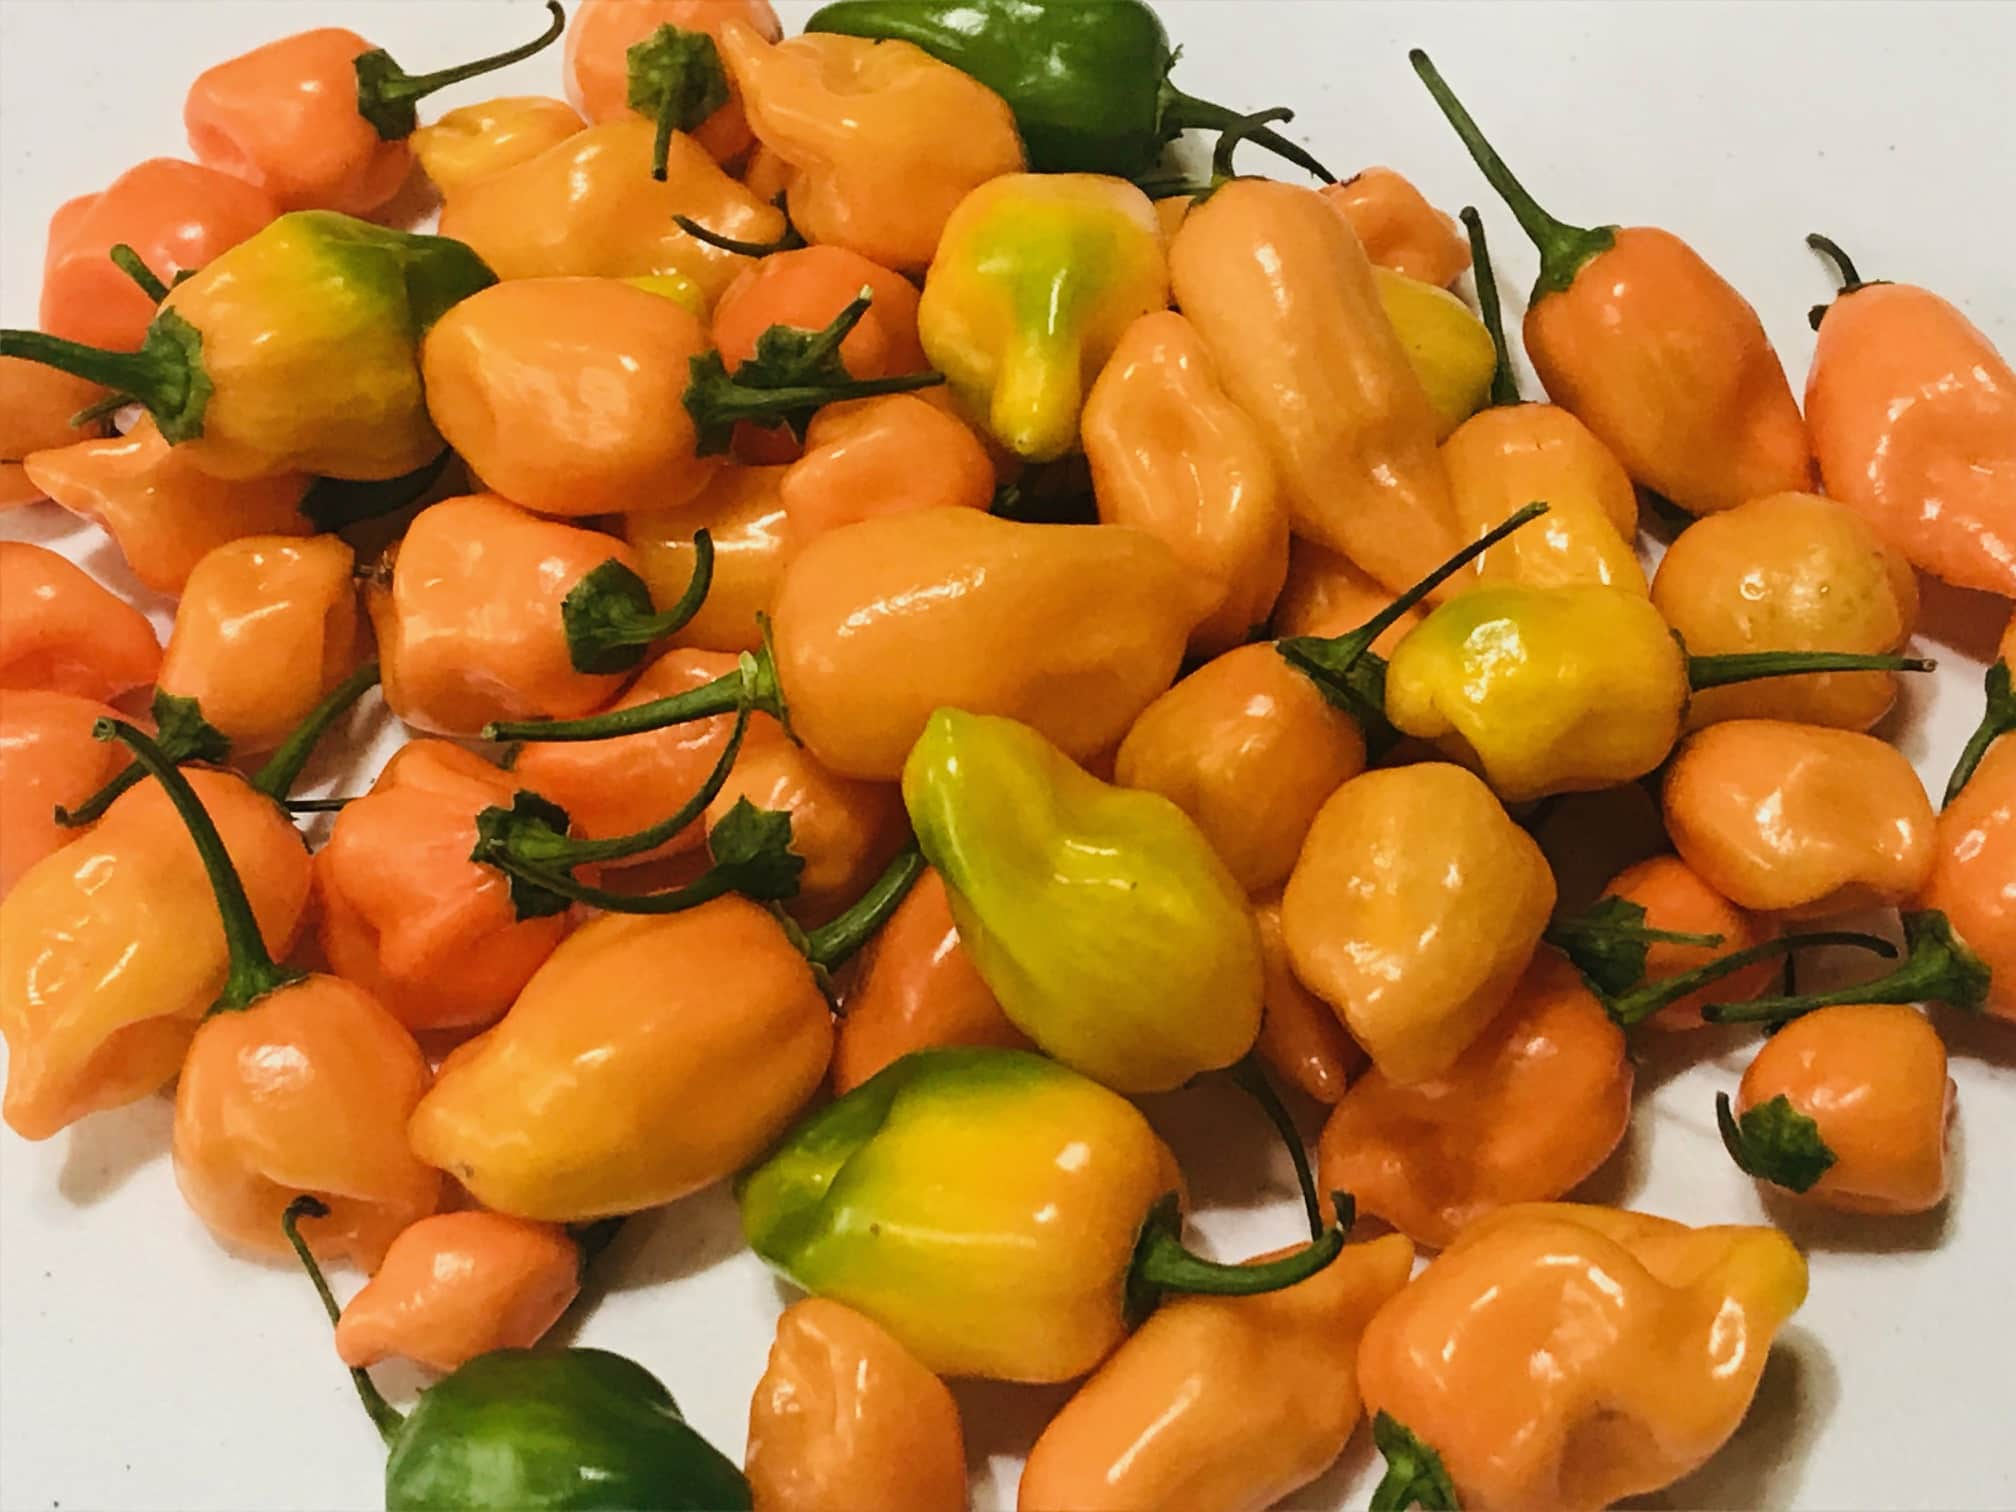 Best Tasting Peppers Habanero Peppers